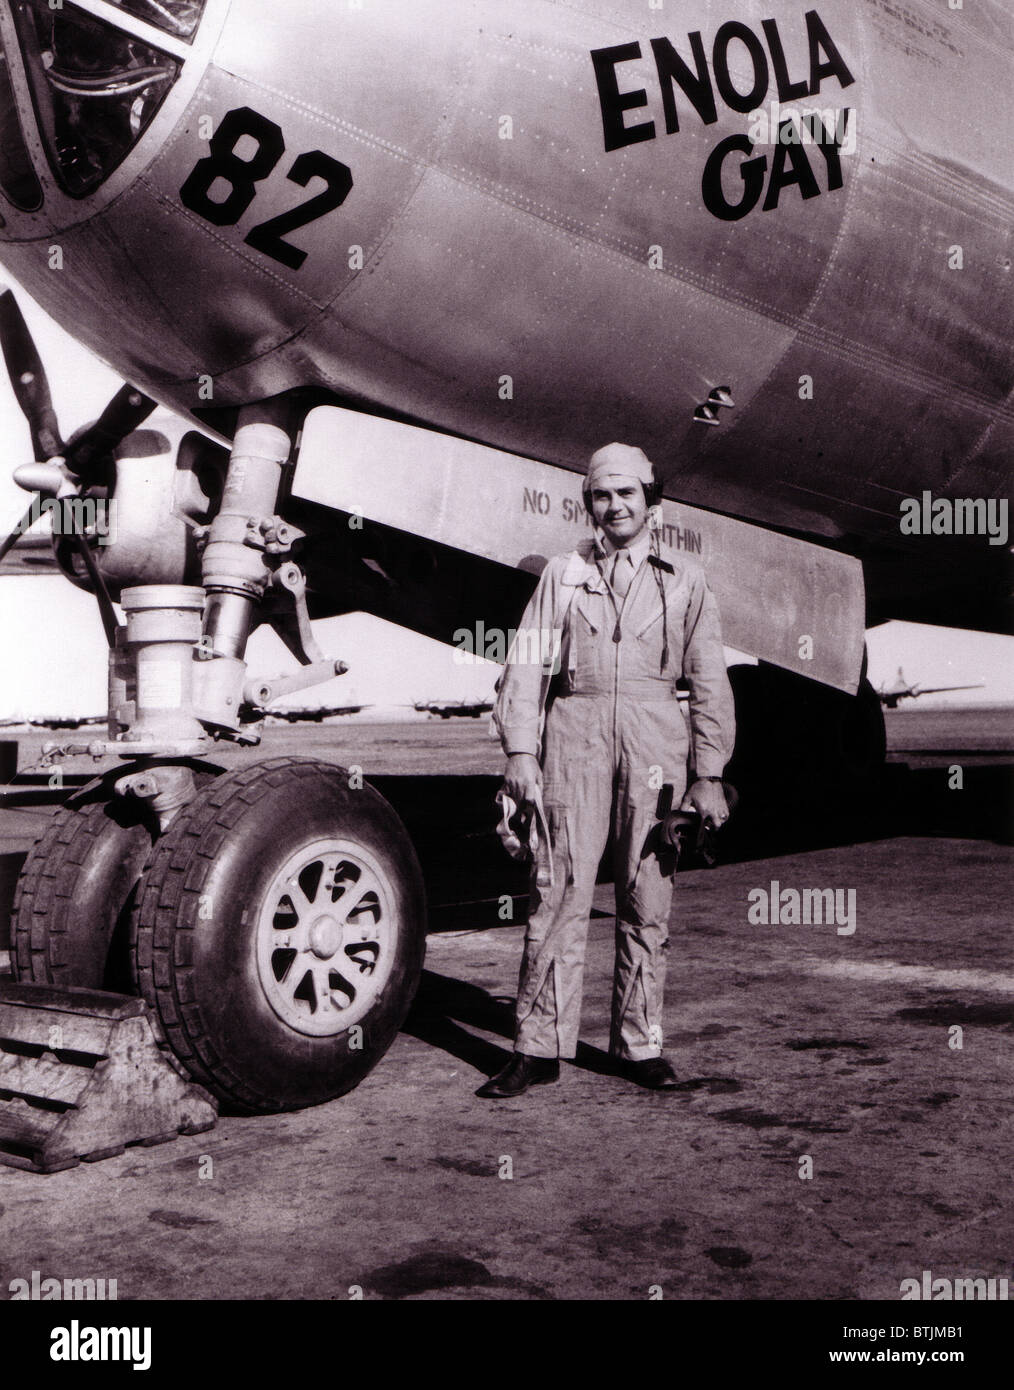 Colonel Paul Tibbets in front of the Enola Gay, ROSWELL ARMY AIR FIELD, New Mexico 1945 Stock Photo